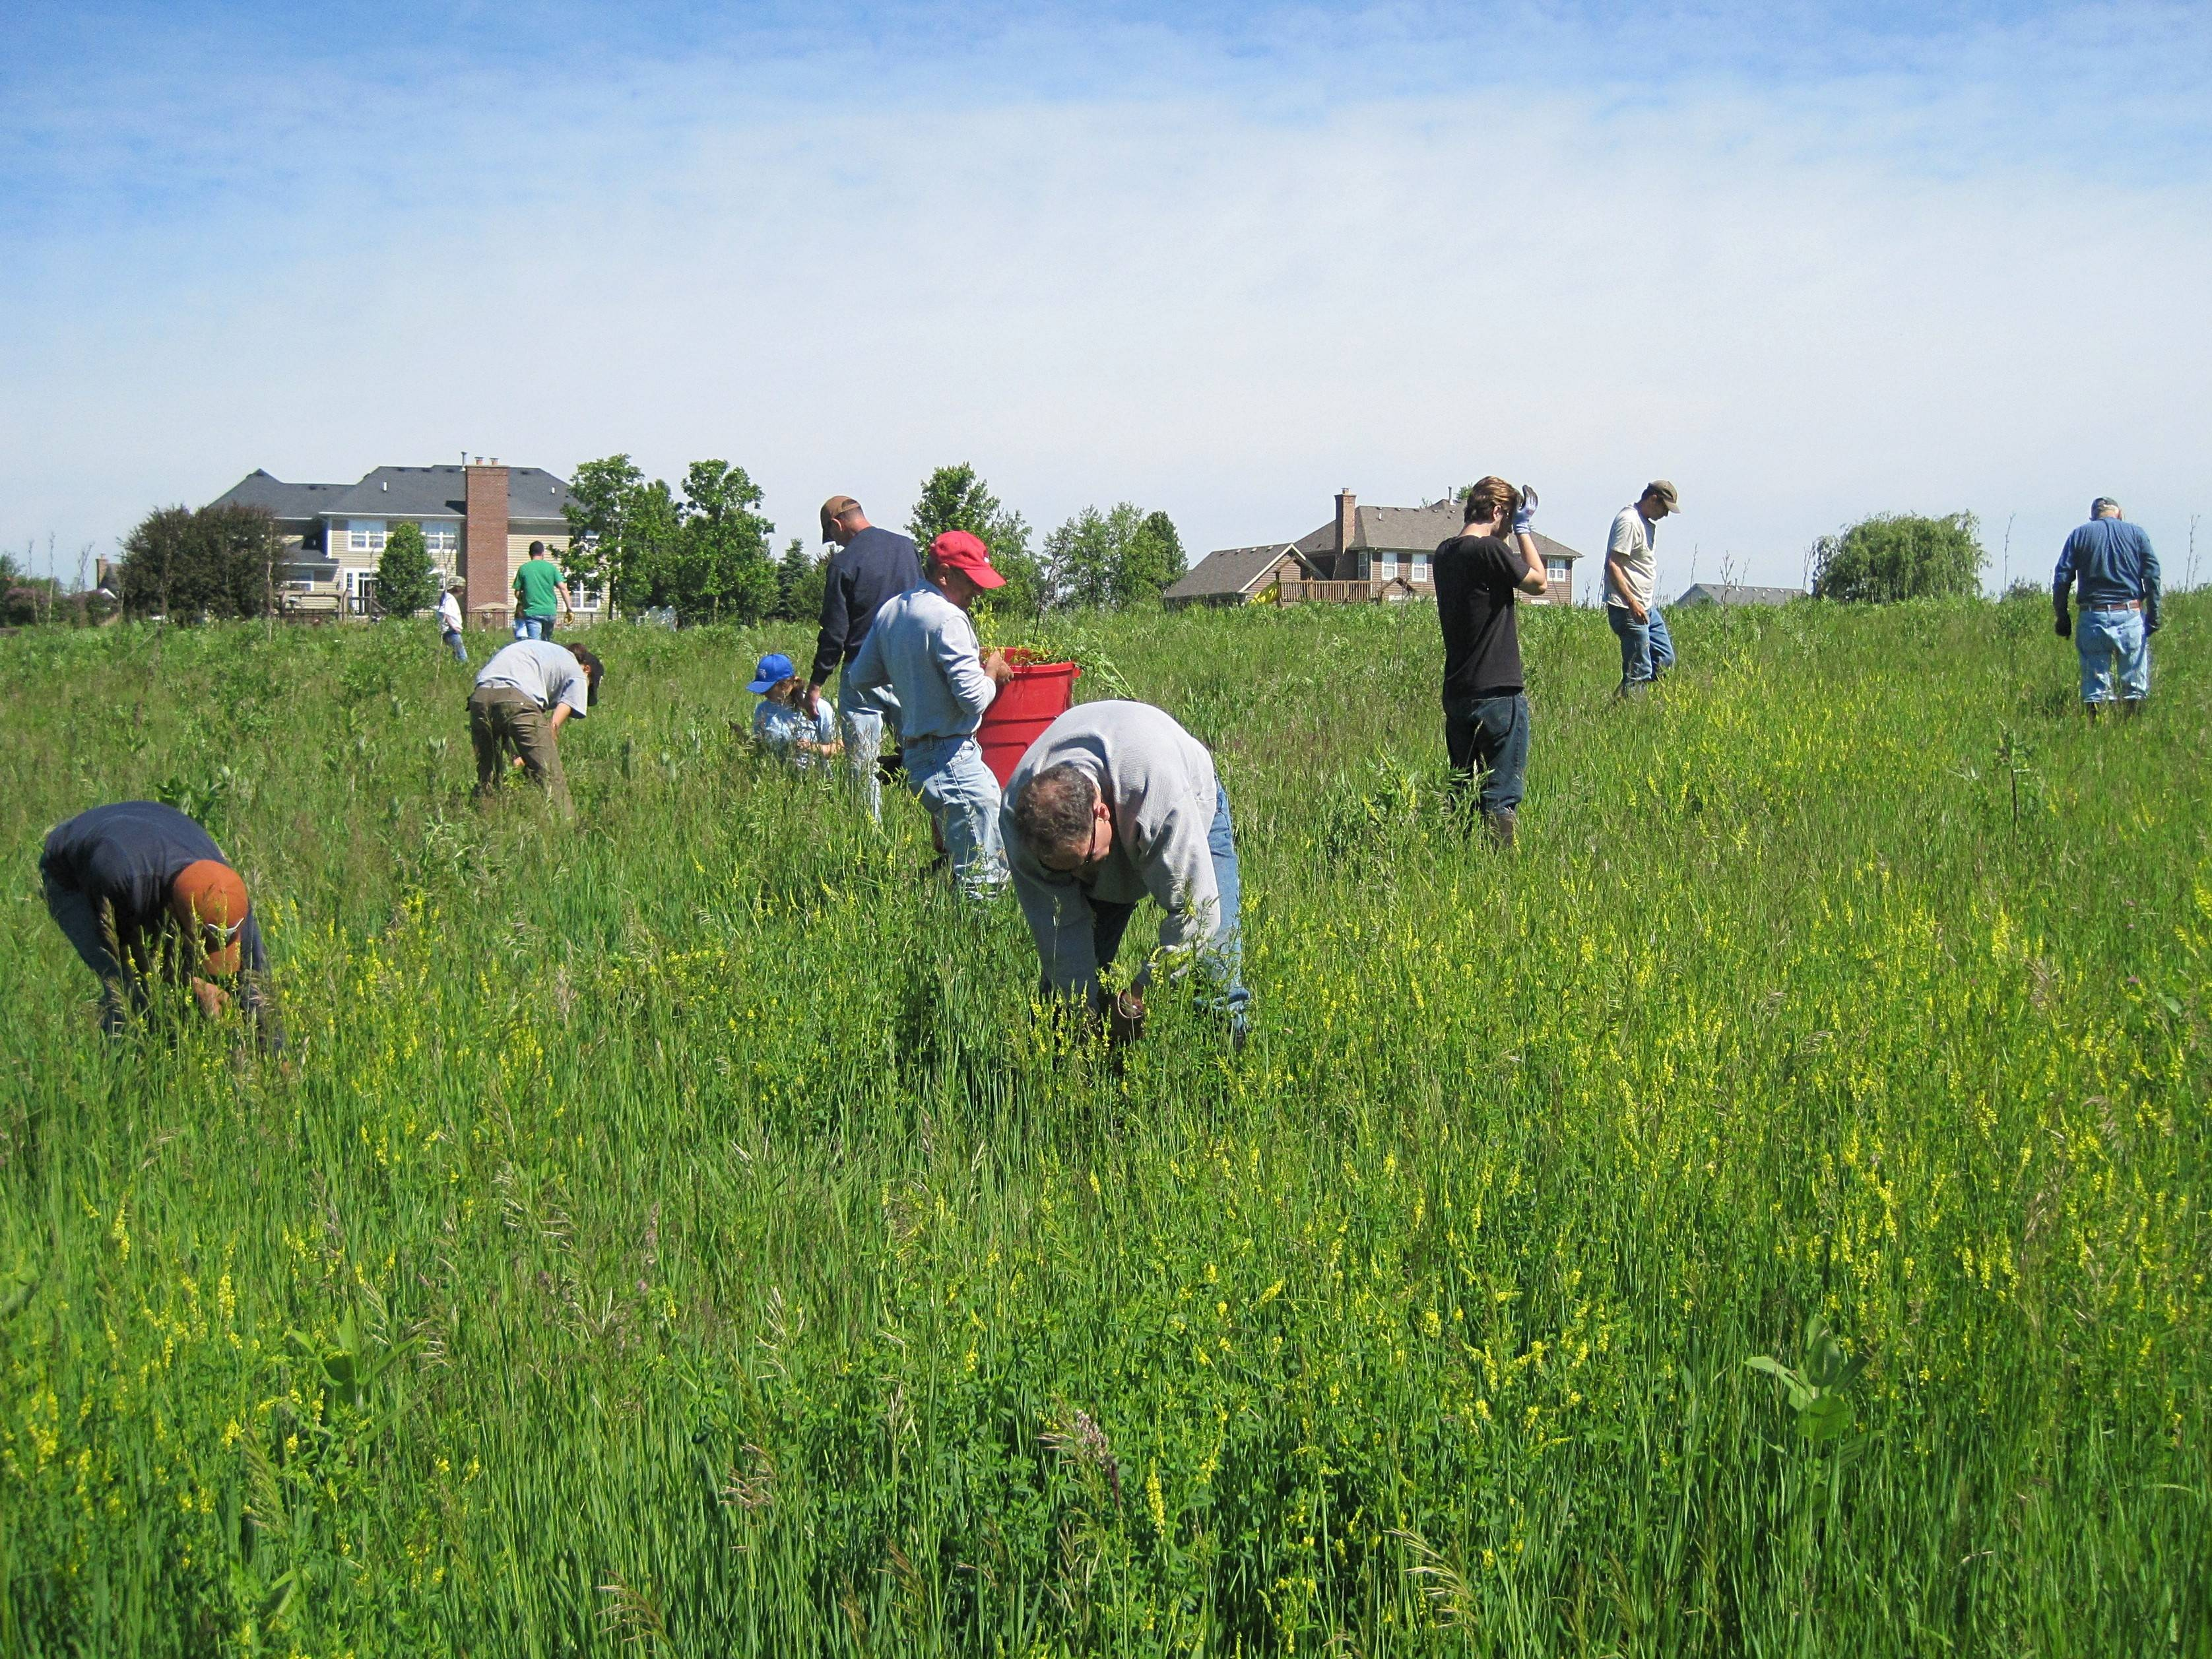 Citizens for Conservation Earth Day volunteers will work 9 to 11 a.m. on Saturday, April 26, continuing the group's restoration of its preserves.